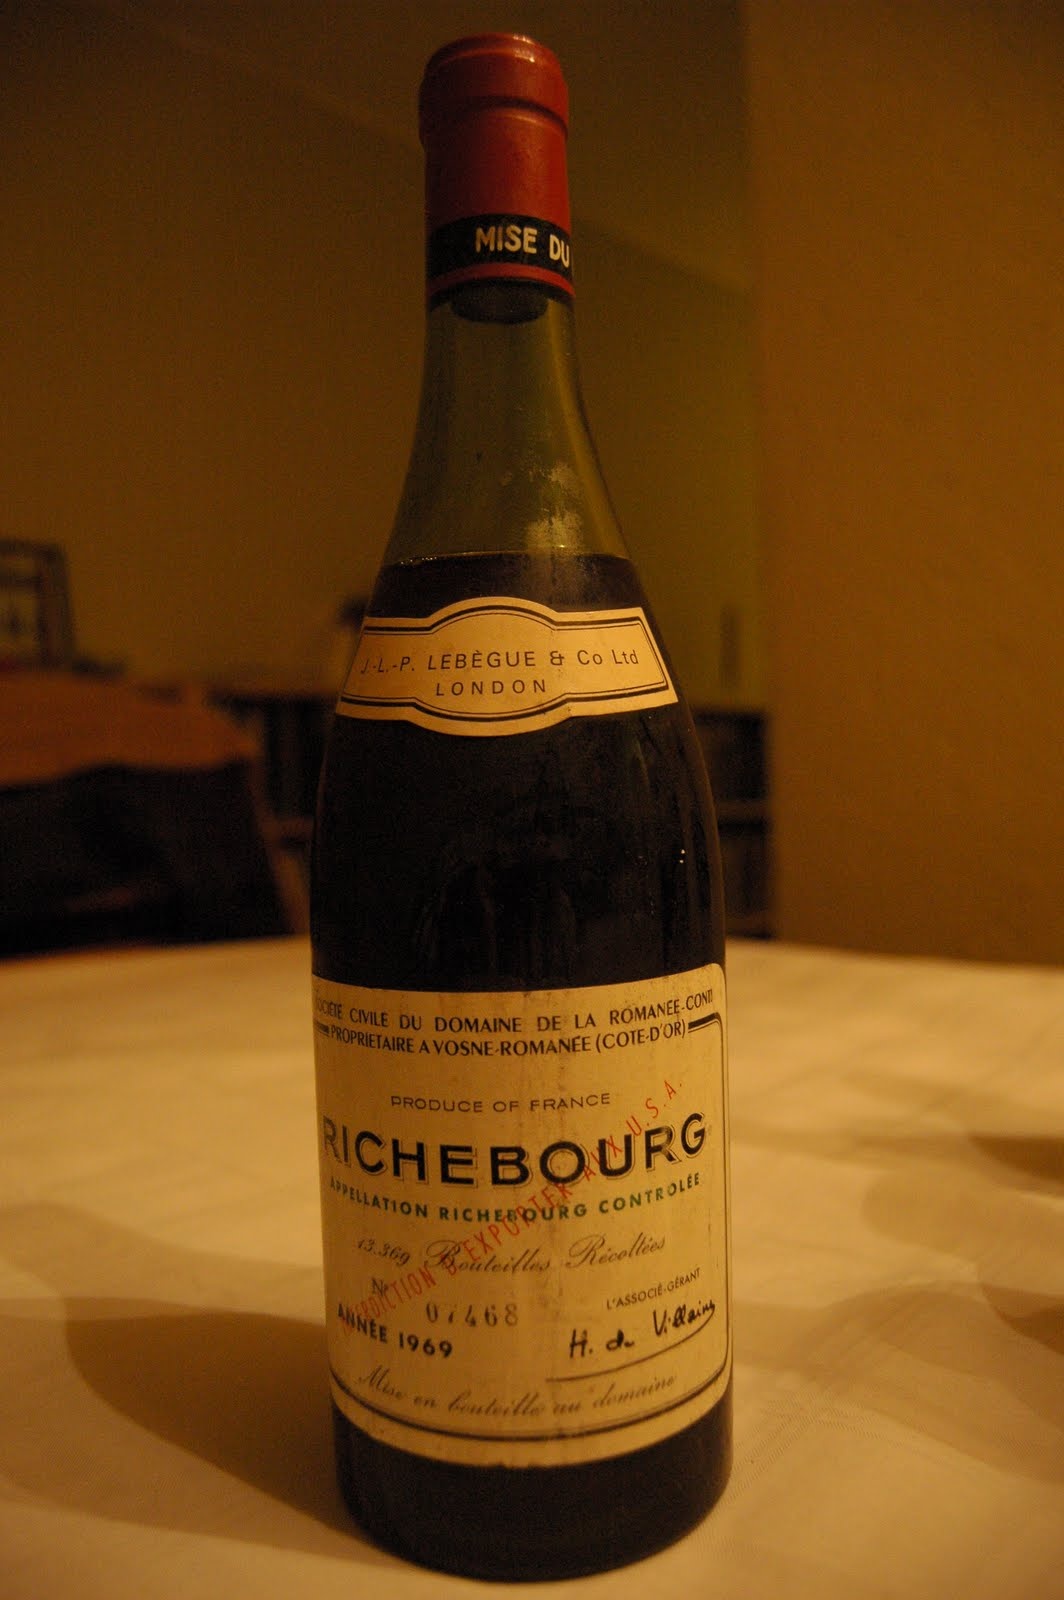 My Wines And More 1969 DRC Richebourg